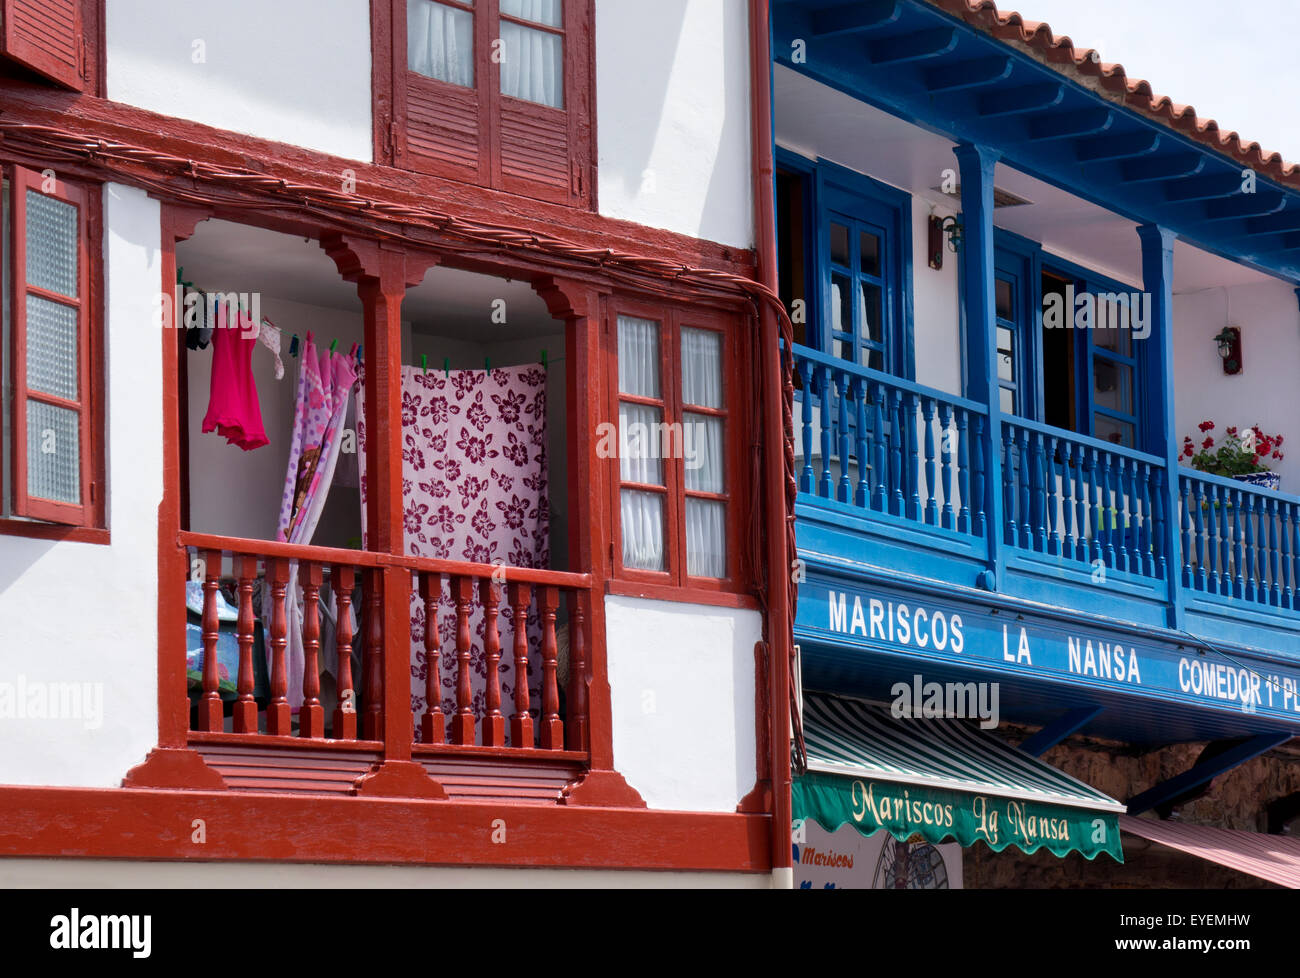 Traditional style balconies in Seaside village of Tazones,Asturias,Northern Spain - Stock Image